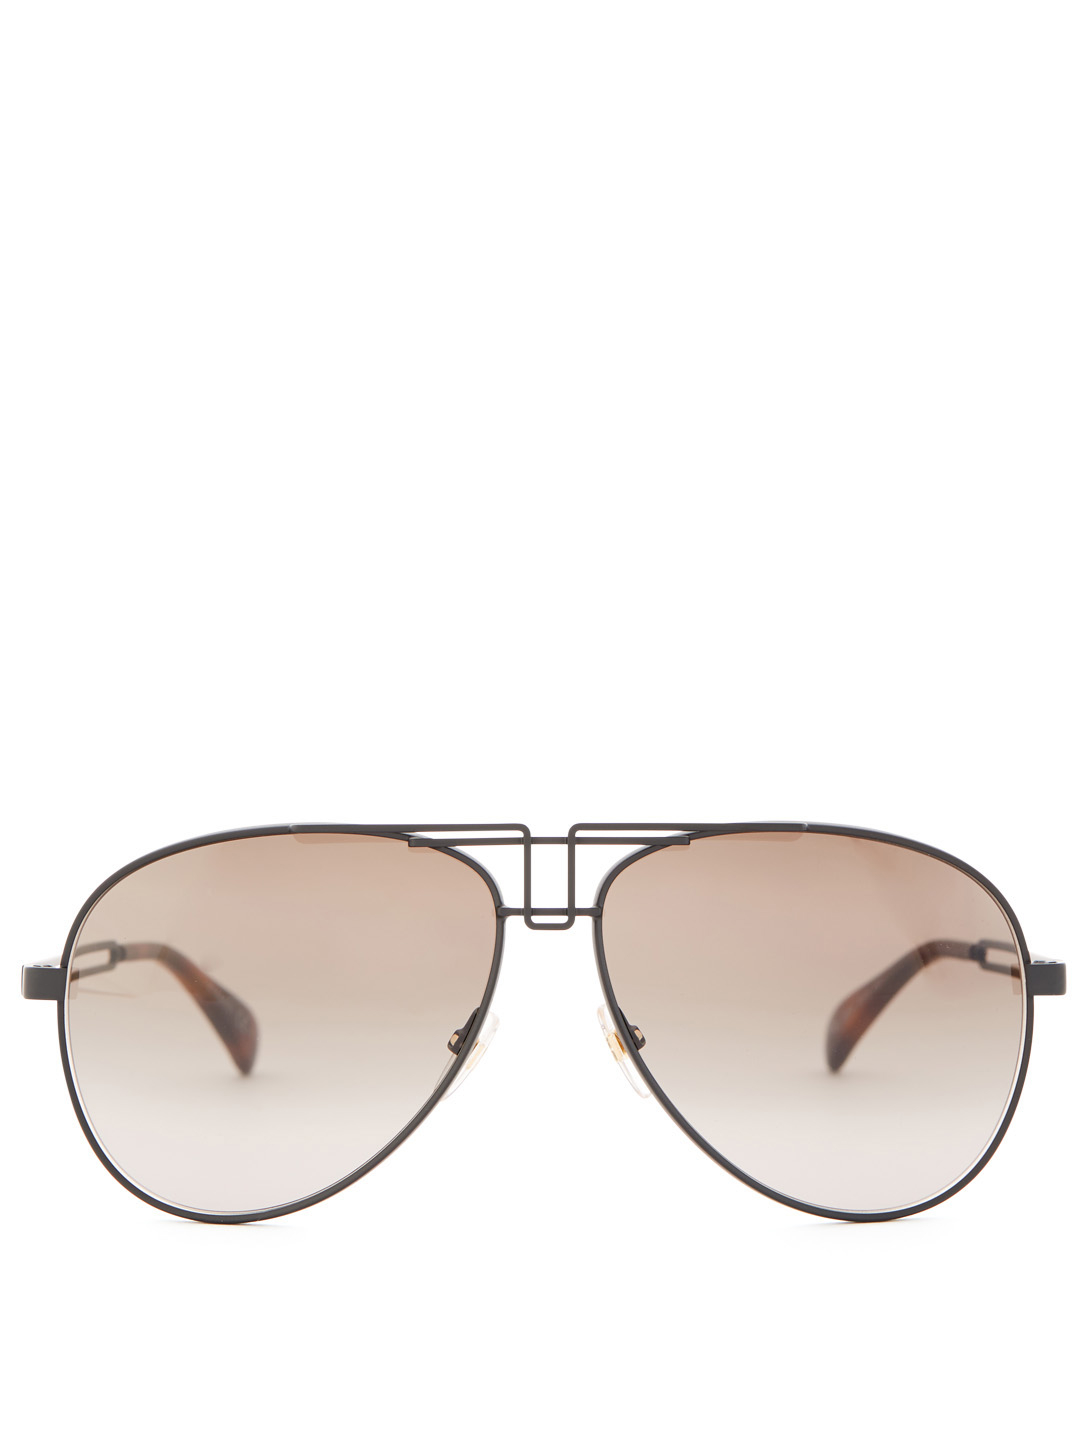 GIVENCHY Aviator Sunglasses Men's Black